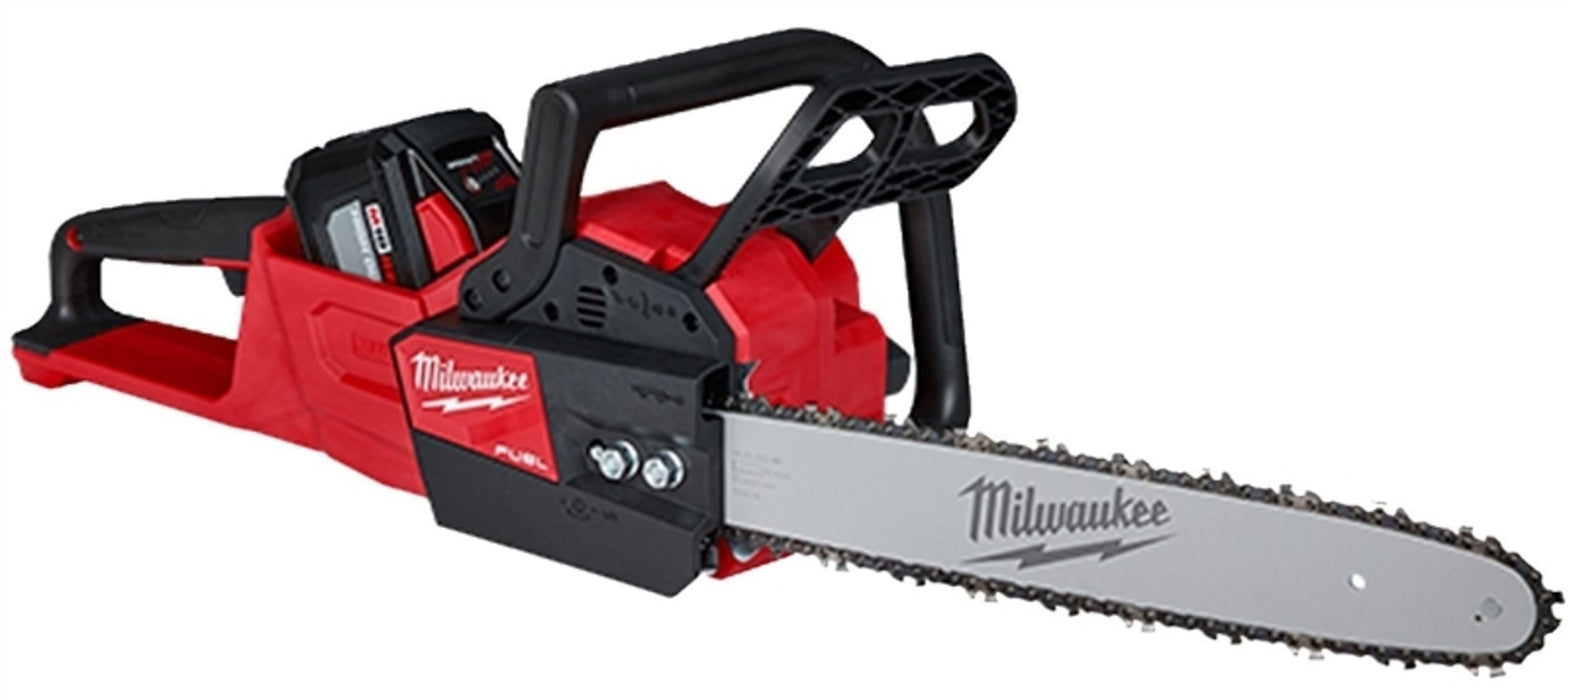 Milwaukee 2727-21HD Cordless Low Profile Chainsaw Kit, 16